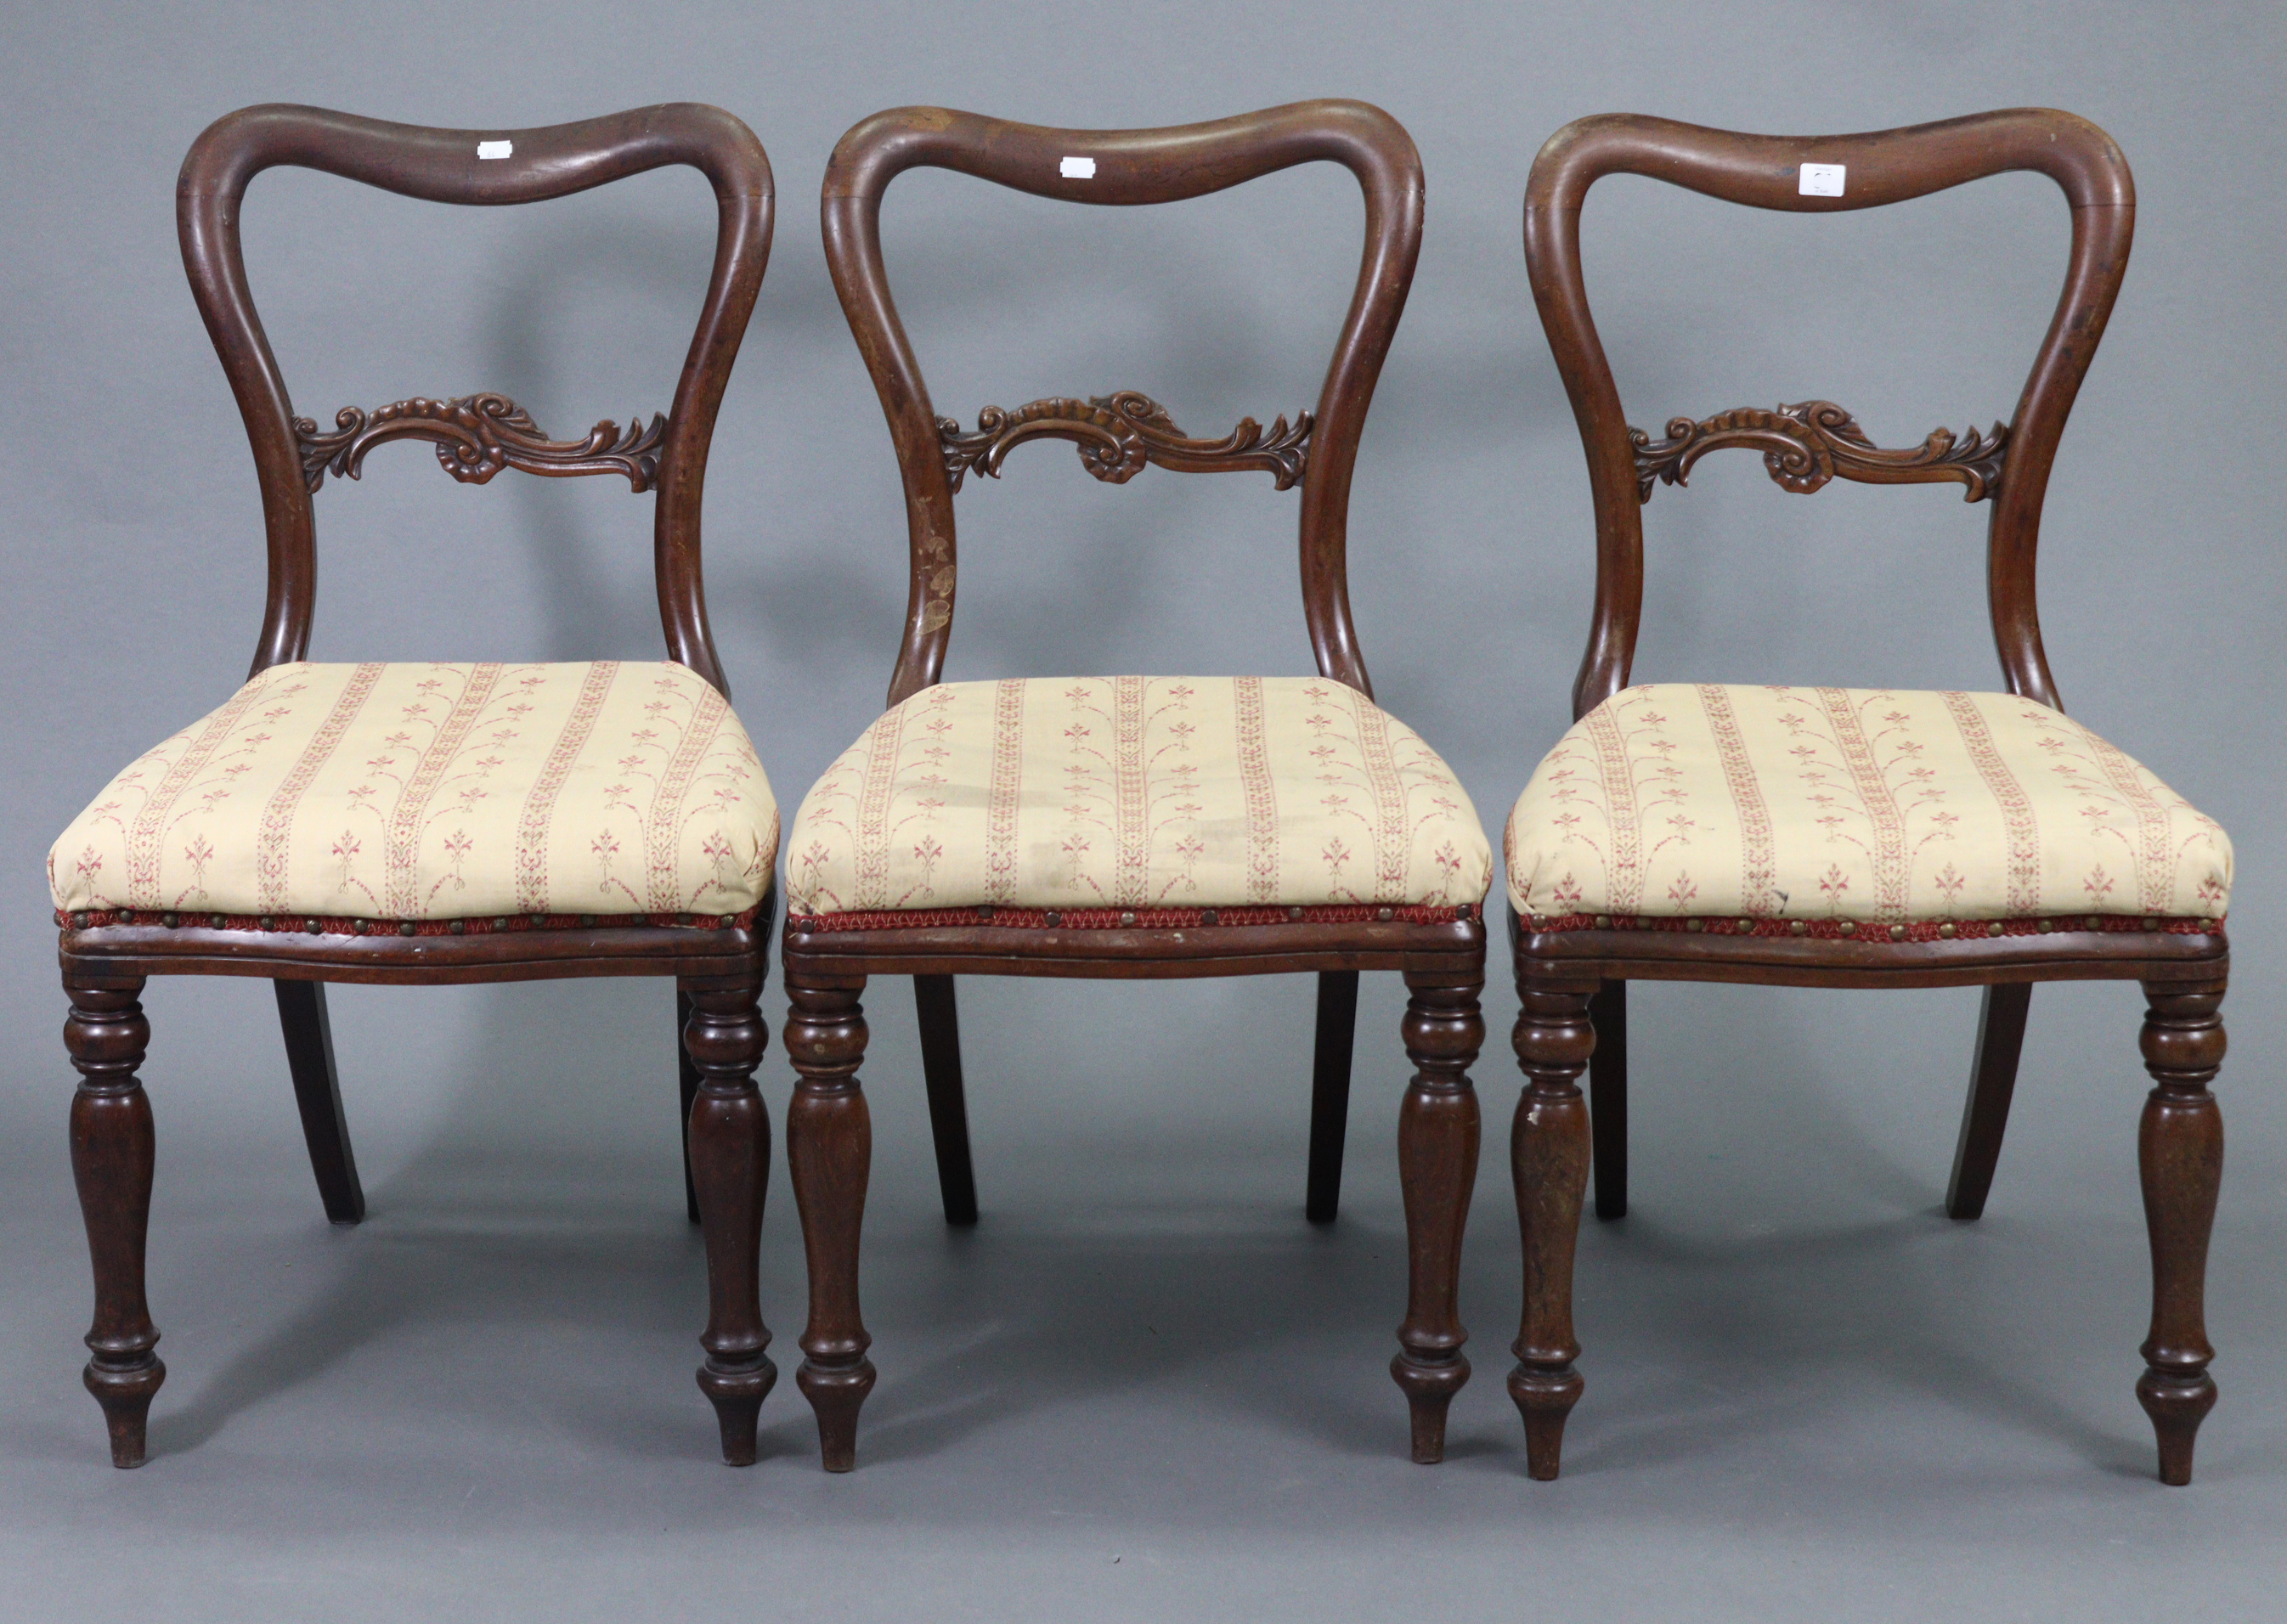 A set of three 19th century mahogany dining chairs, each with carved rail to the kidney-shaped